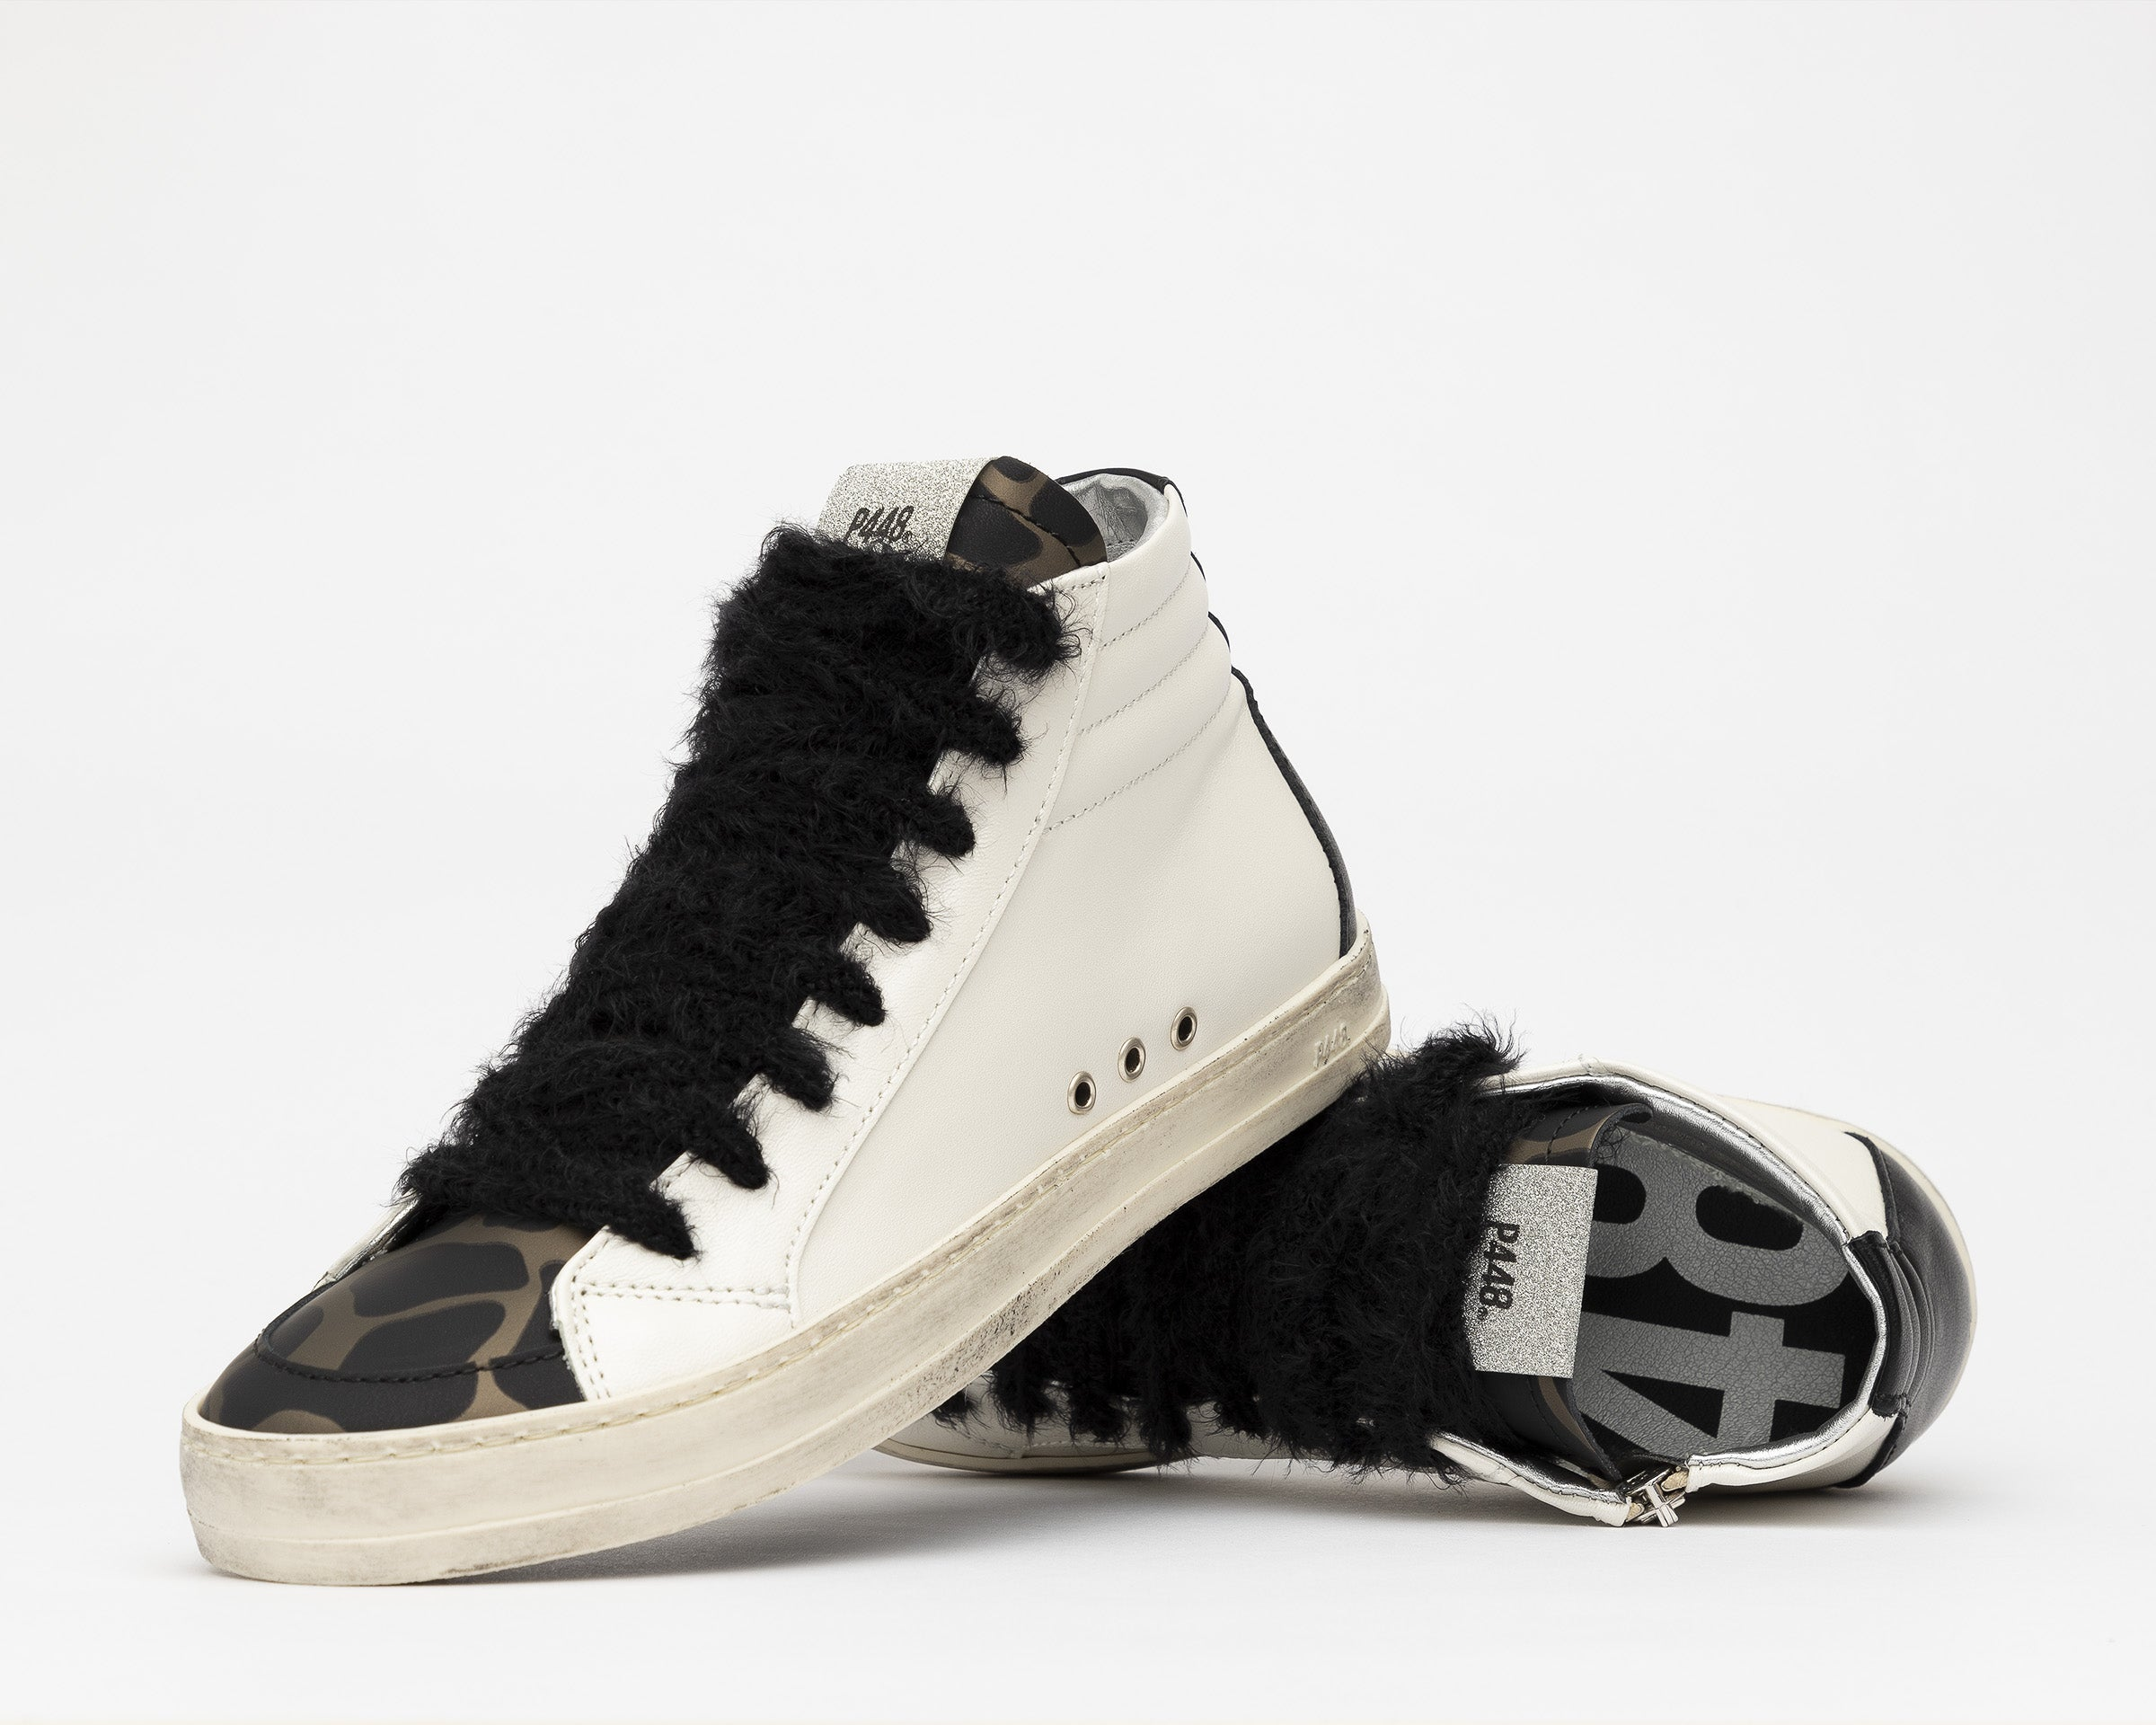 Skate High-Top Sneaker in White/Army Giraffe - Detail